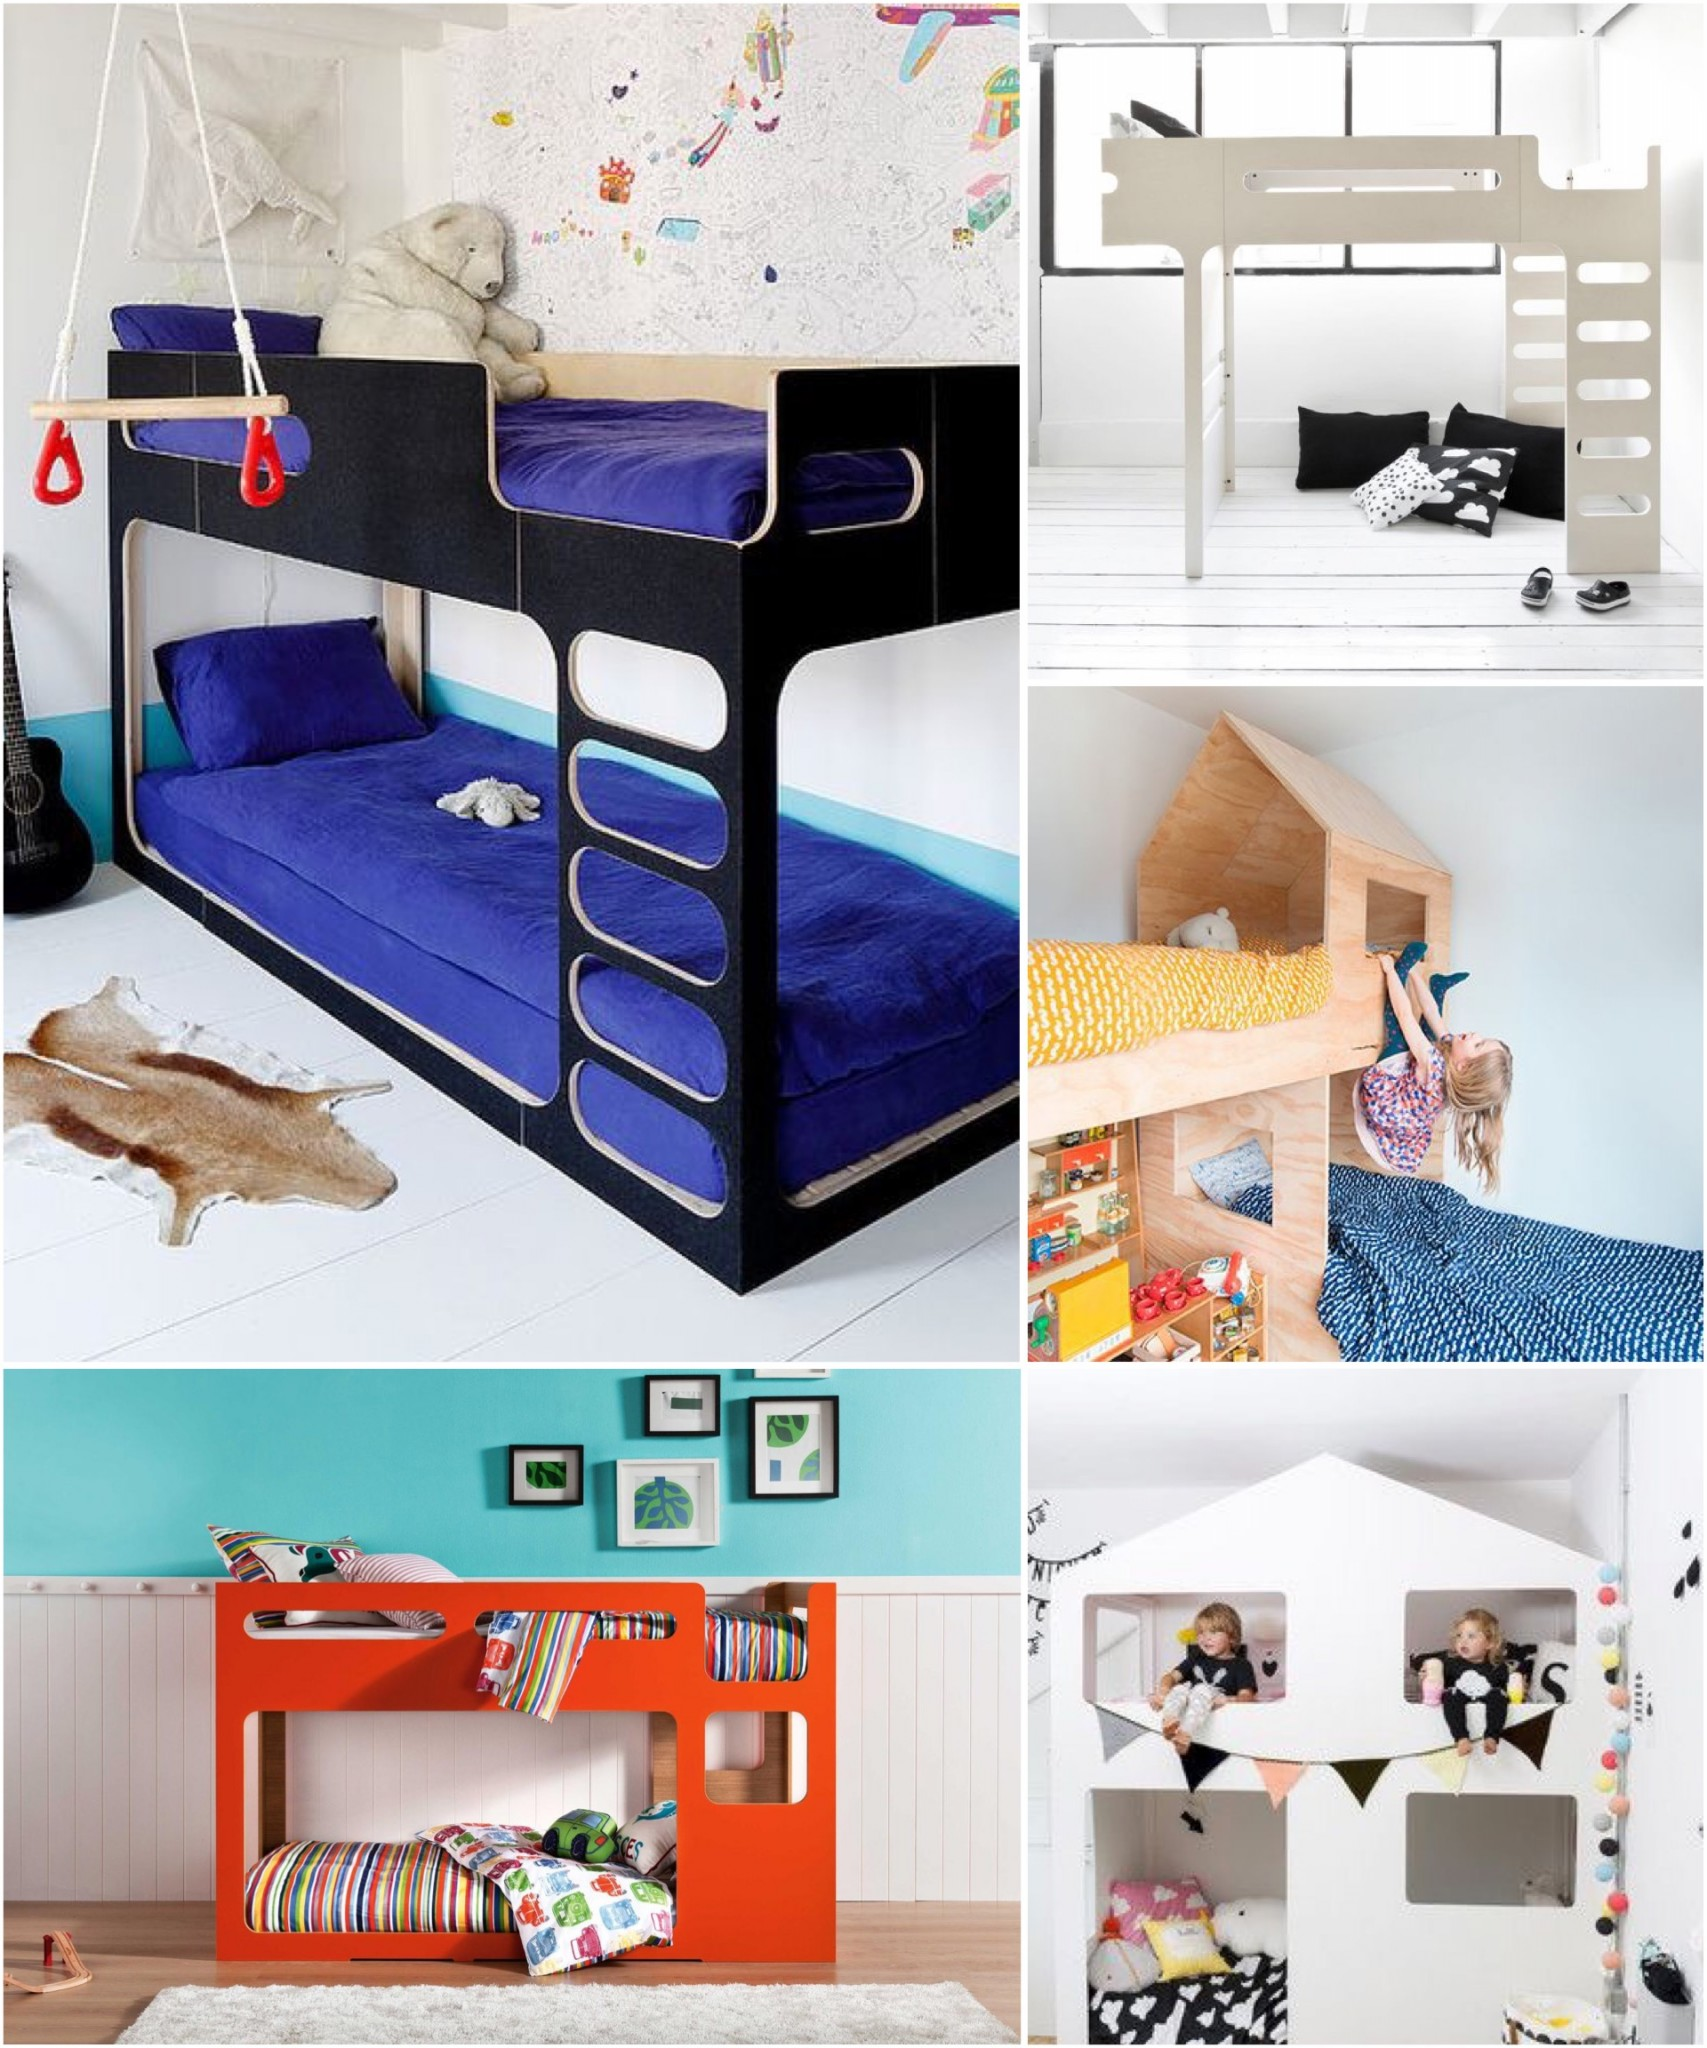 Bunk beds | THE DOOR IN THE WALL